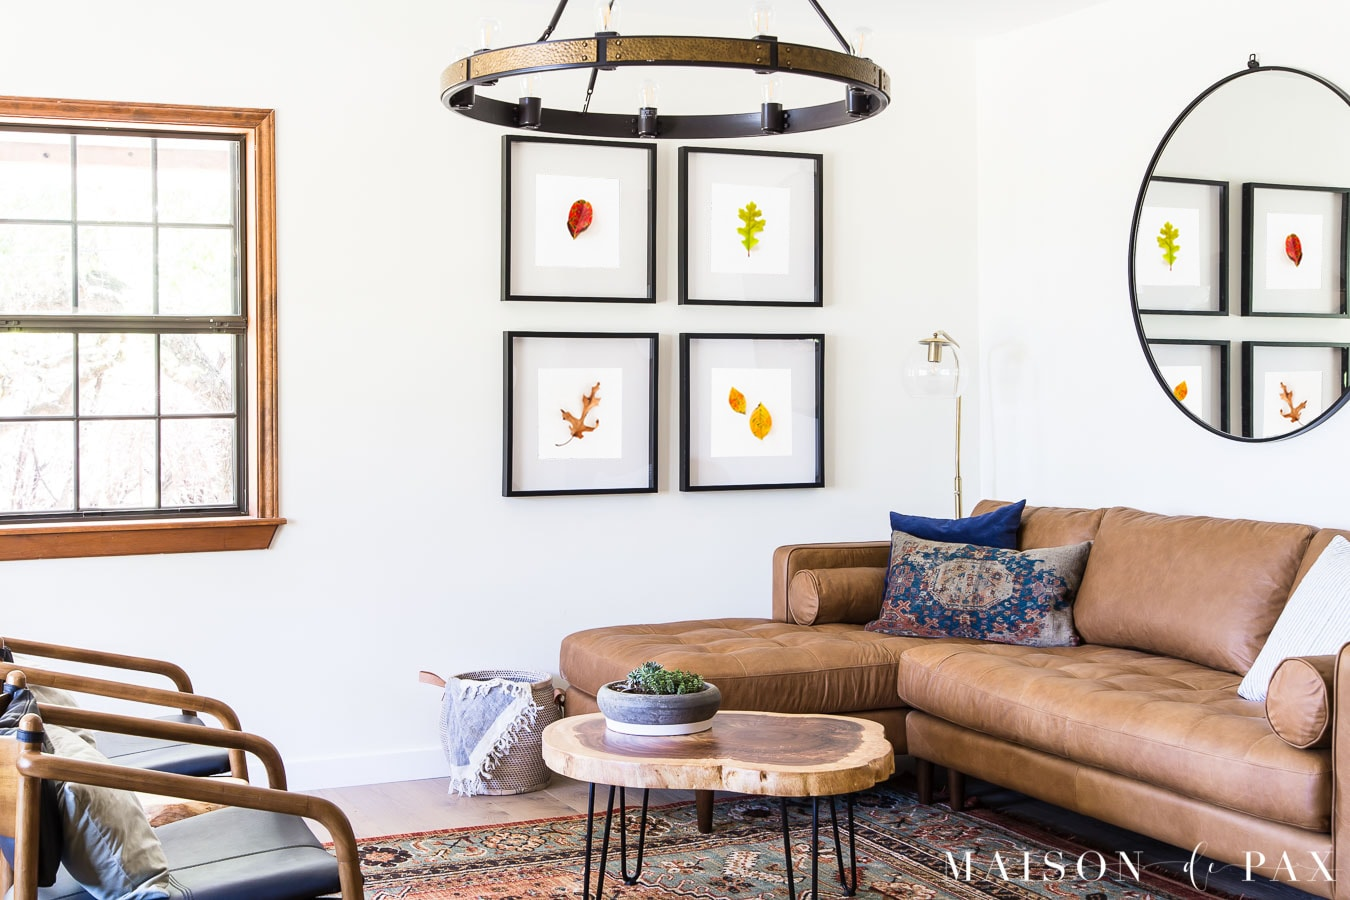 tan leather sofa, persian rug, and fall leaves as wall art   Maison de Pax